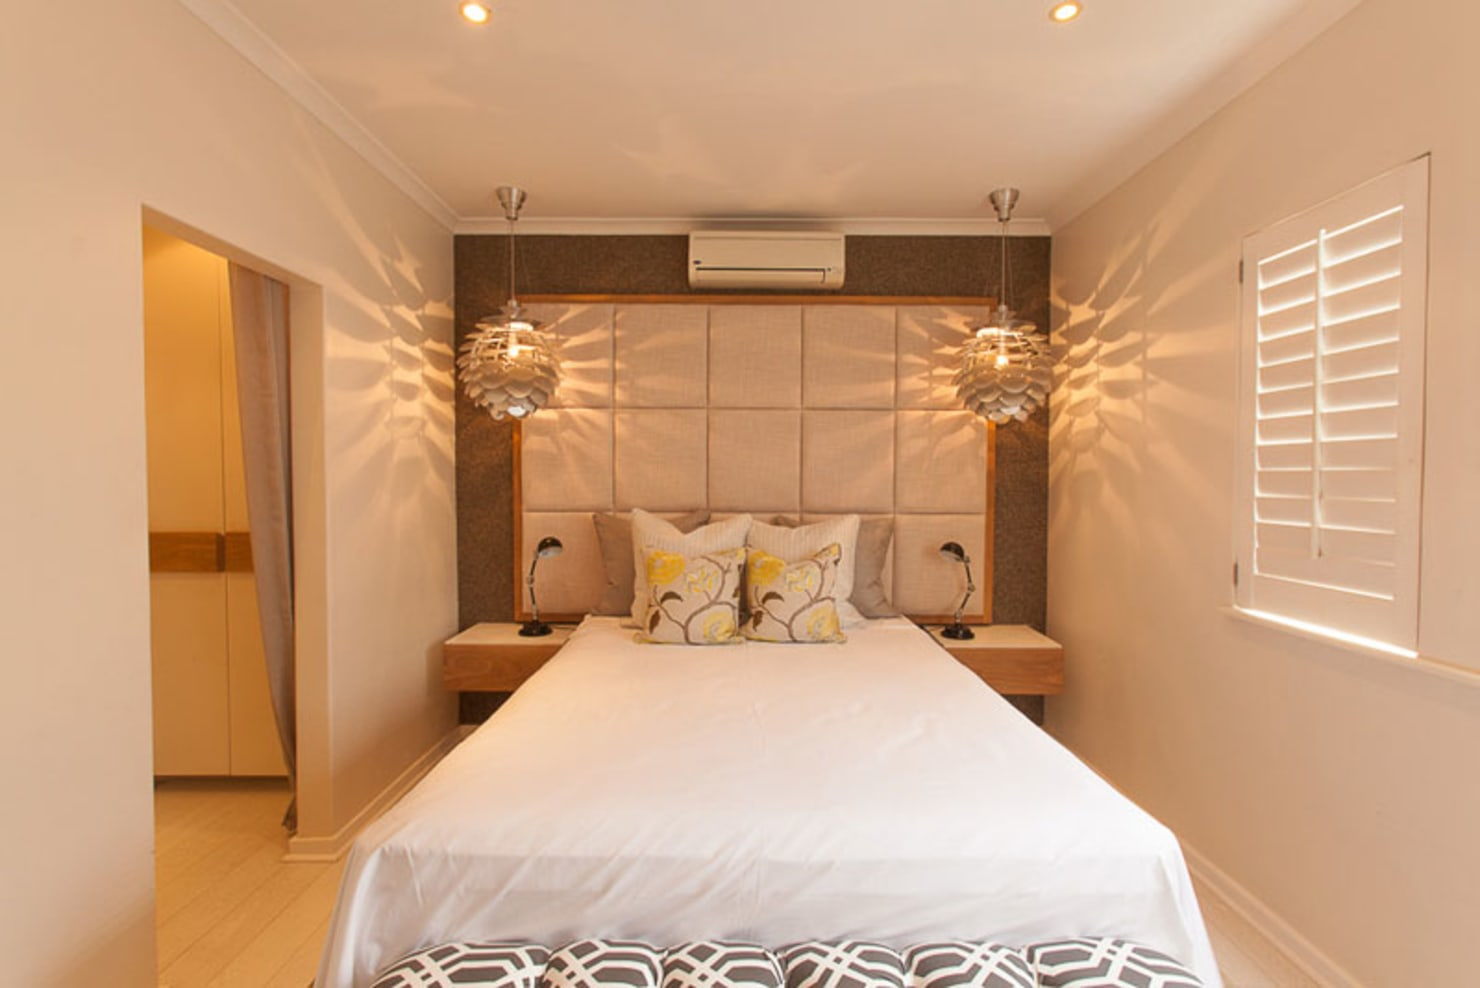 Bedroom by Redesign Interiors